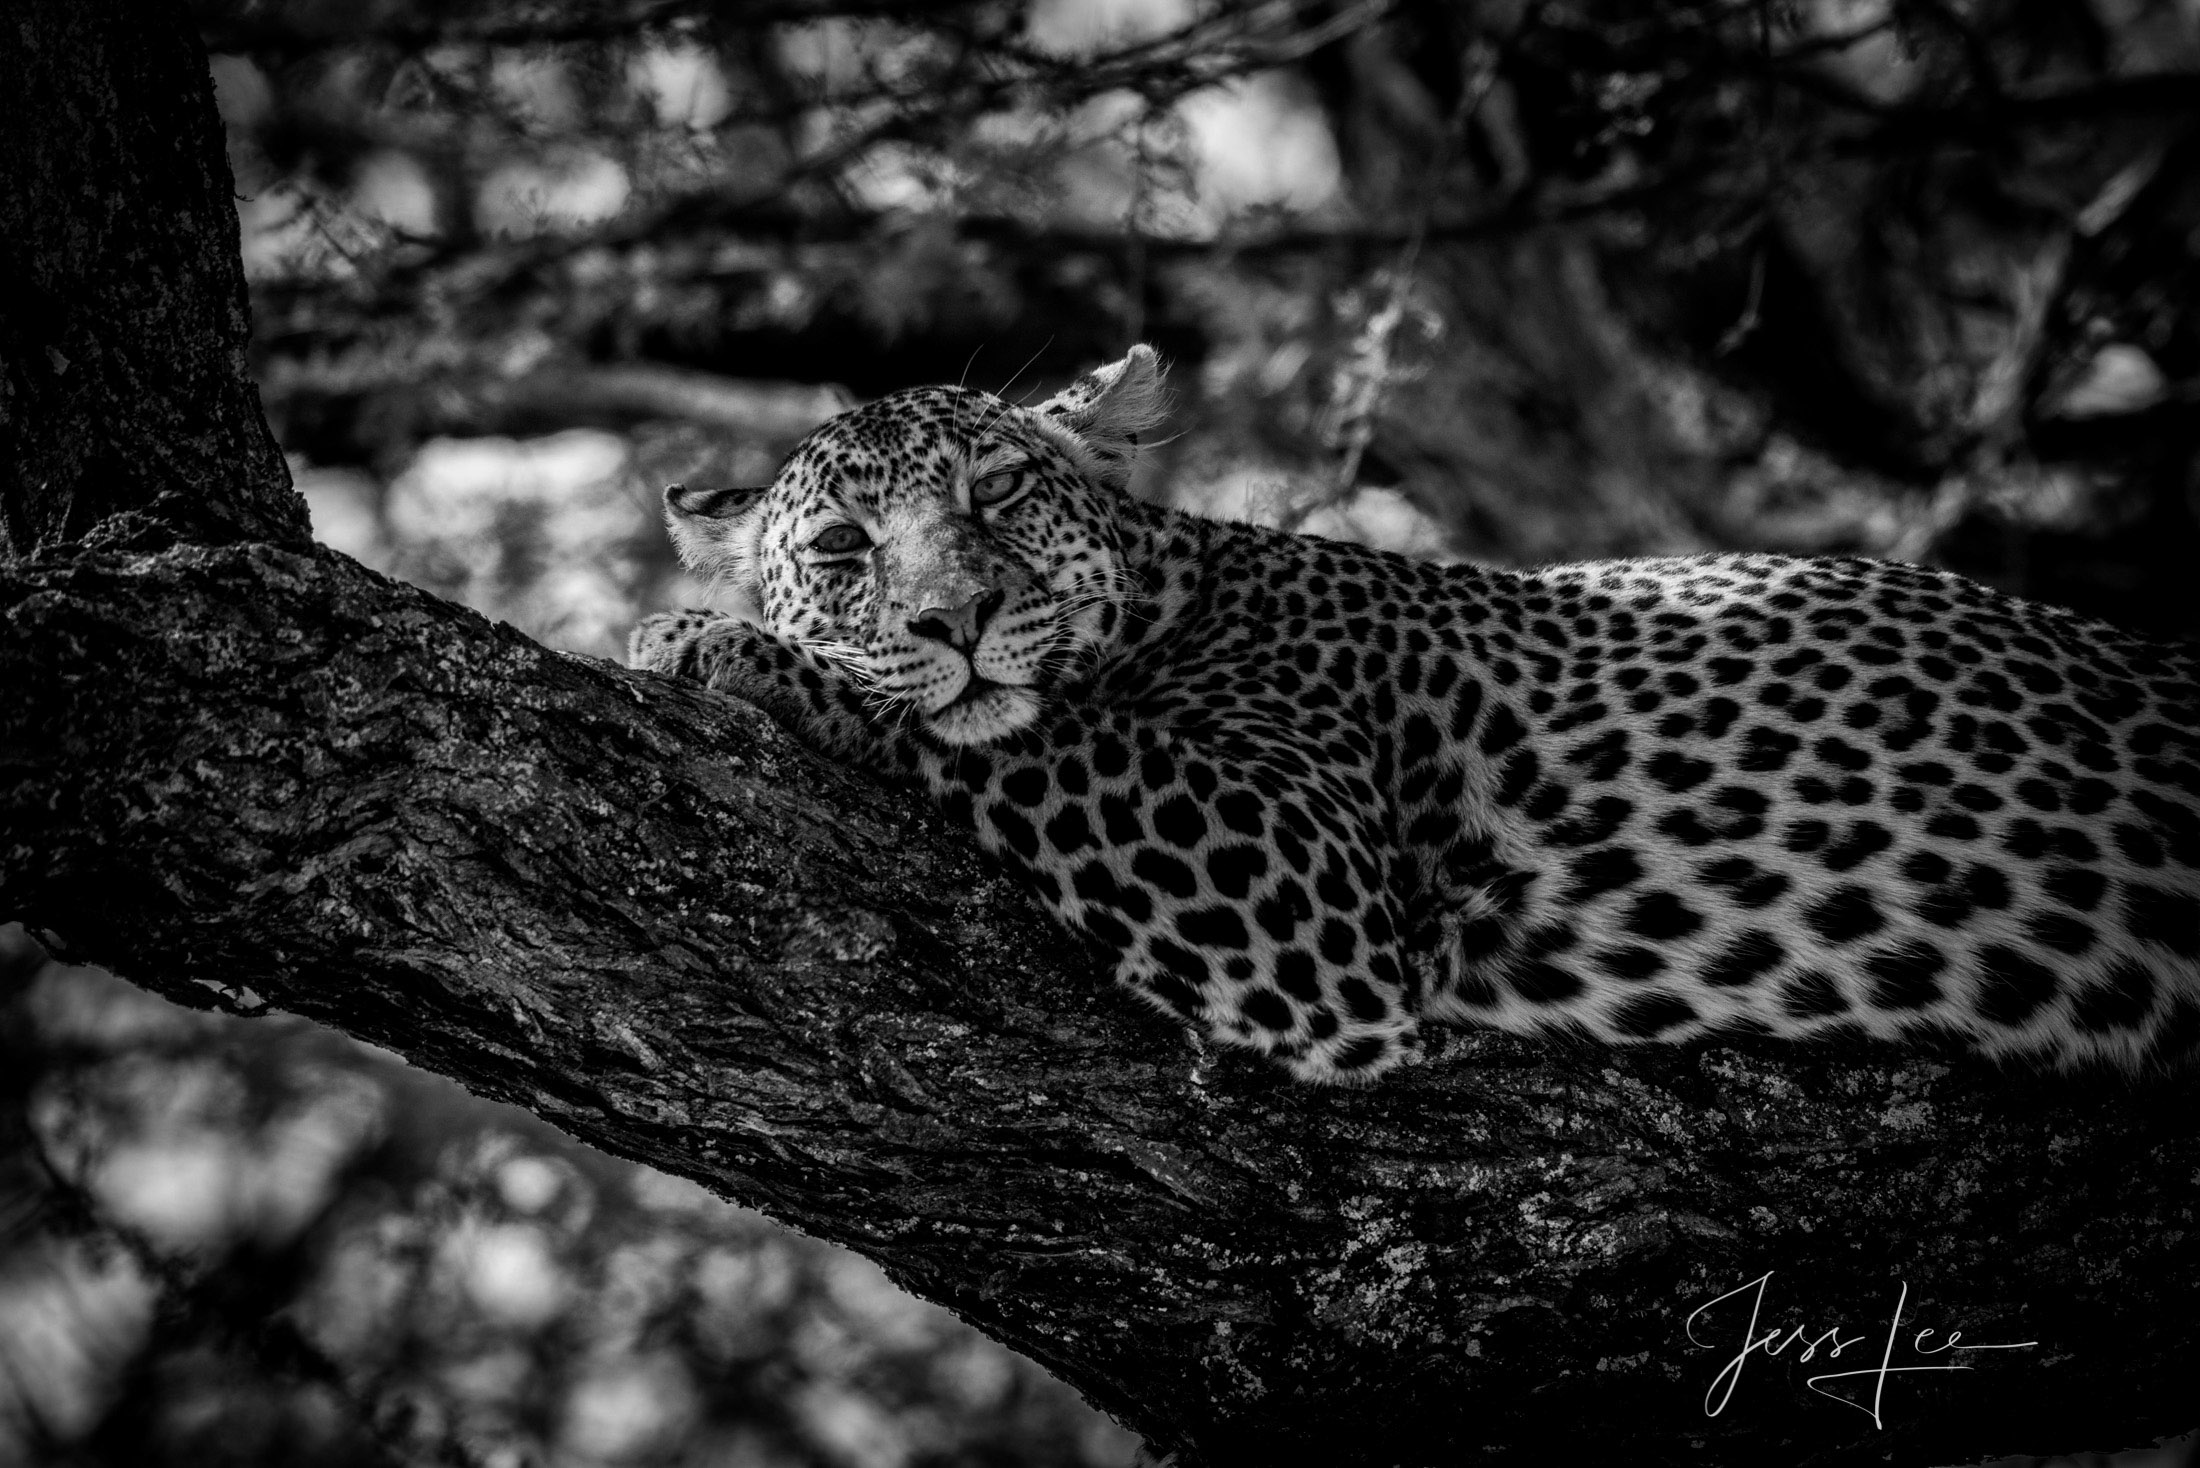 Black and White photo of African Leopard resting on a tree limb.